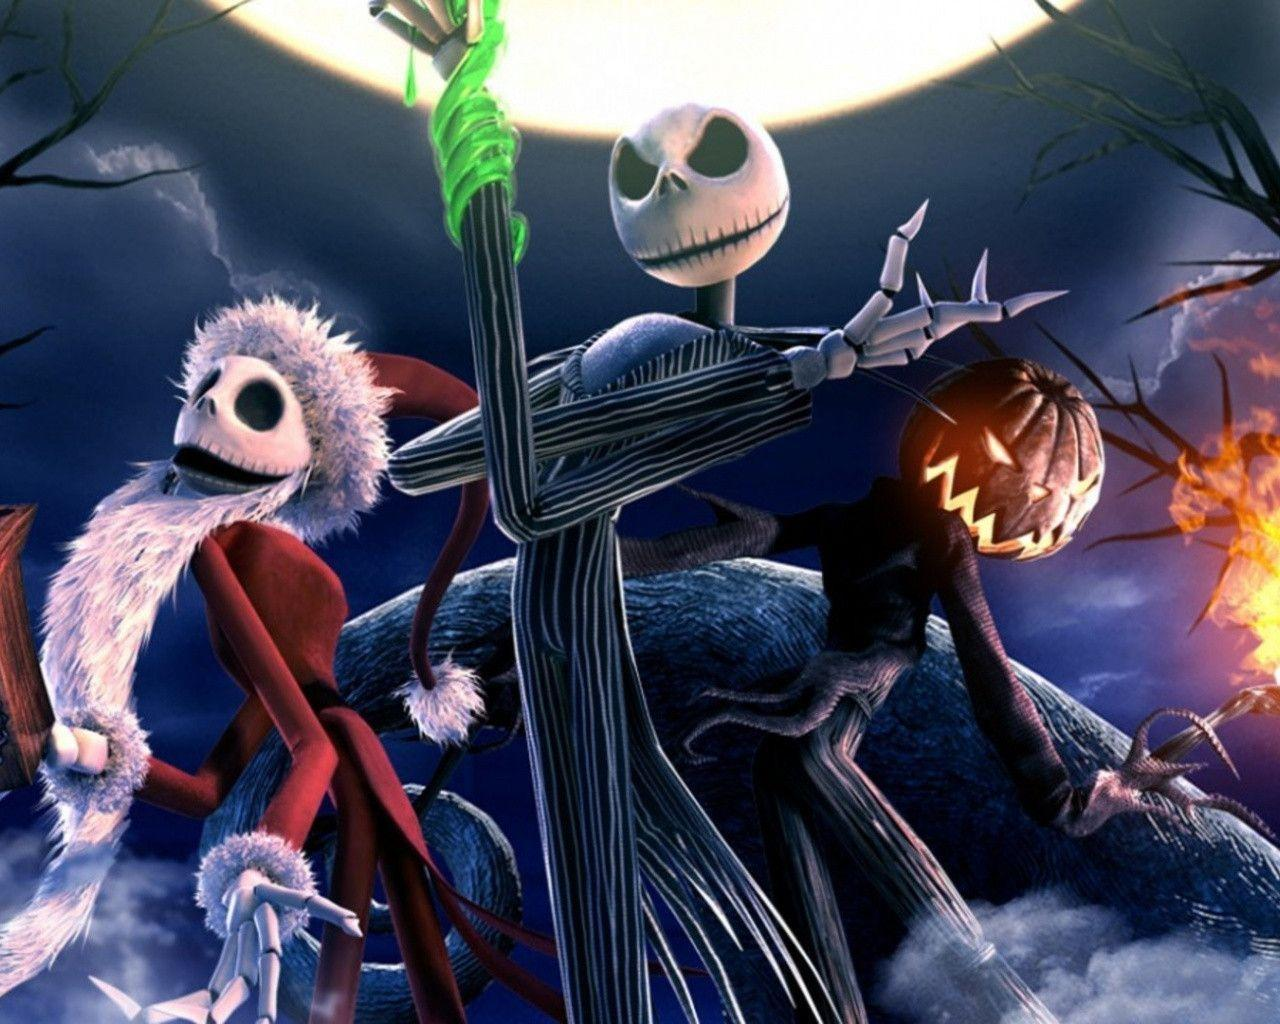 Night King Hd Wallpaper Nightmare Before Christmas Wallpapers Desktop Wallpaper Cave